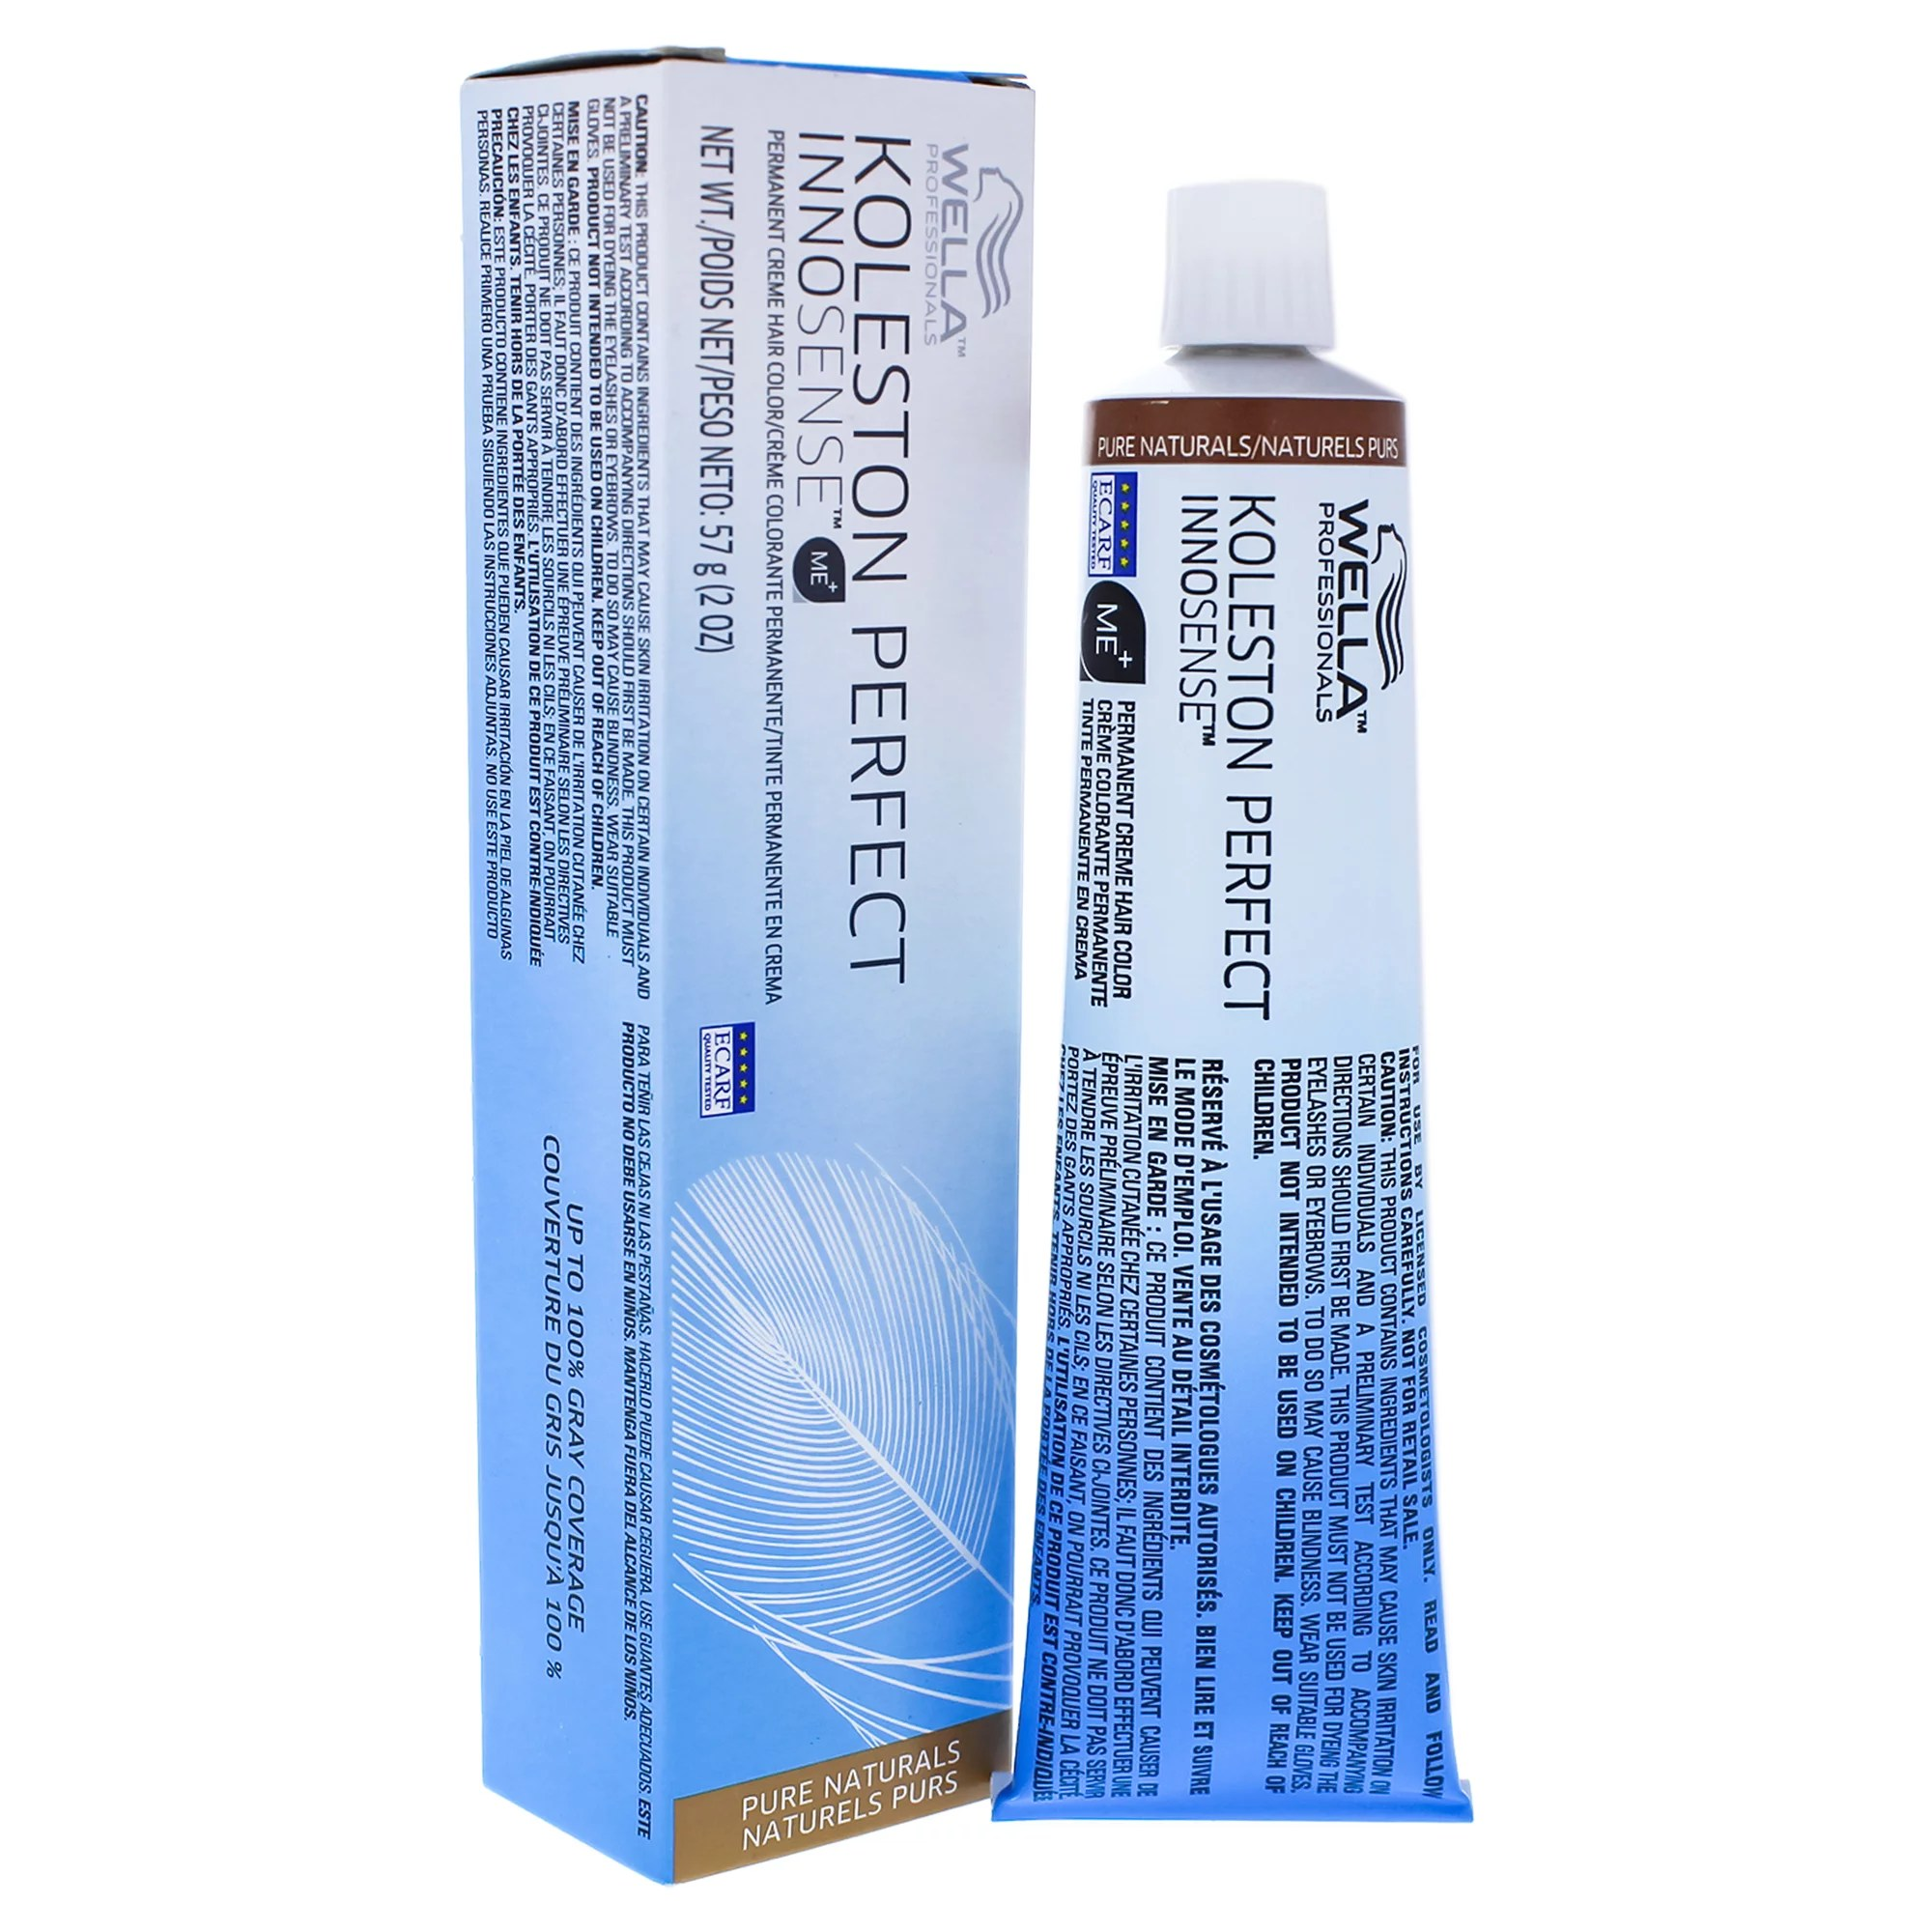 Koleston Perfect Innosense Permanent Creme Hair Color – 5 0 Light Brown-Natural by for Unisex – 2 oz Hair Color